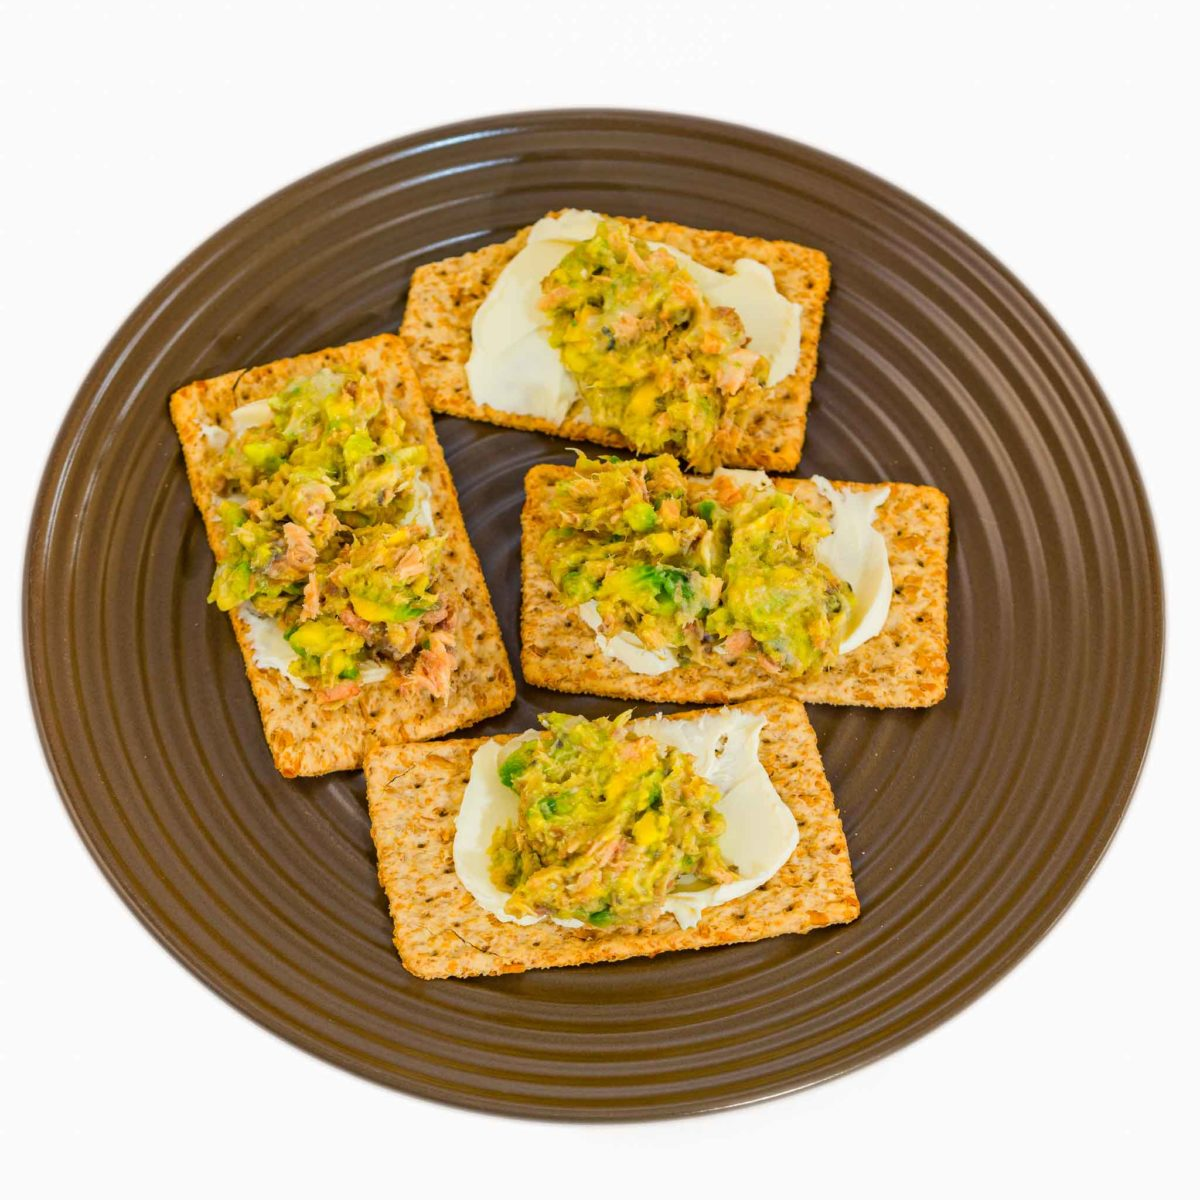 Tinned pink salmon with avocado on Vita-Weat with cream cheese